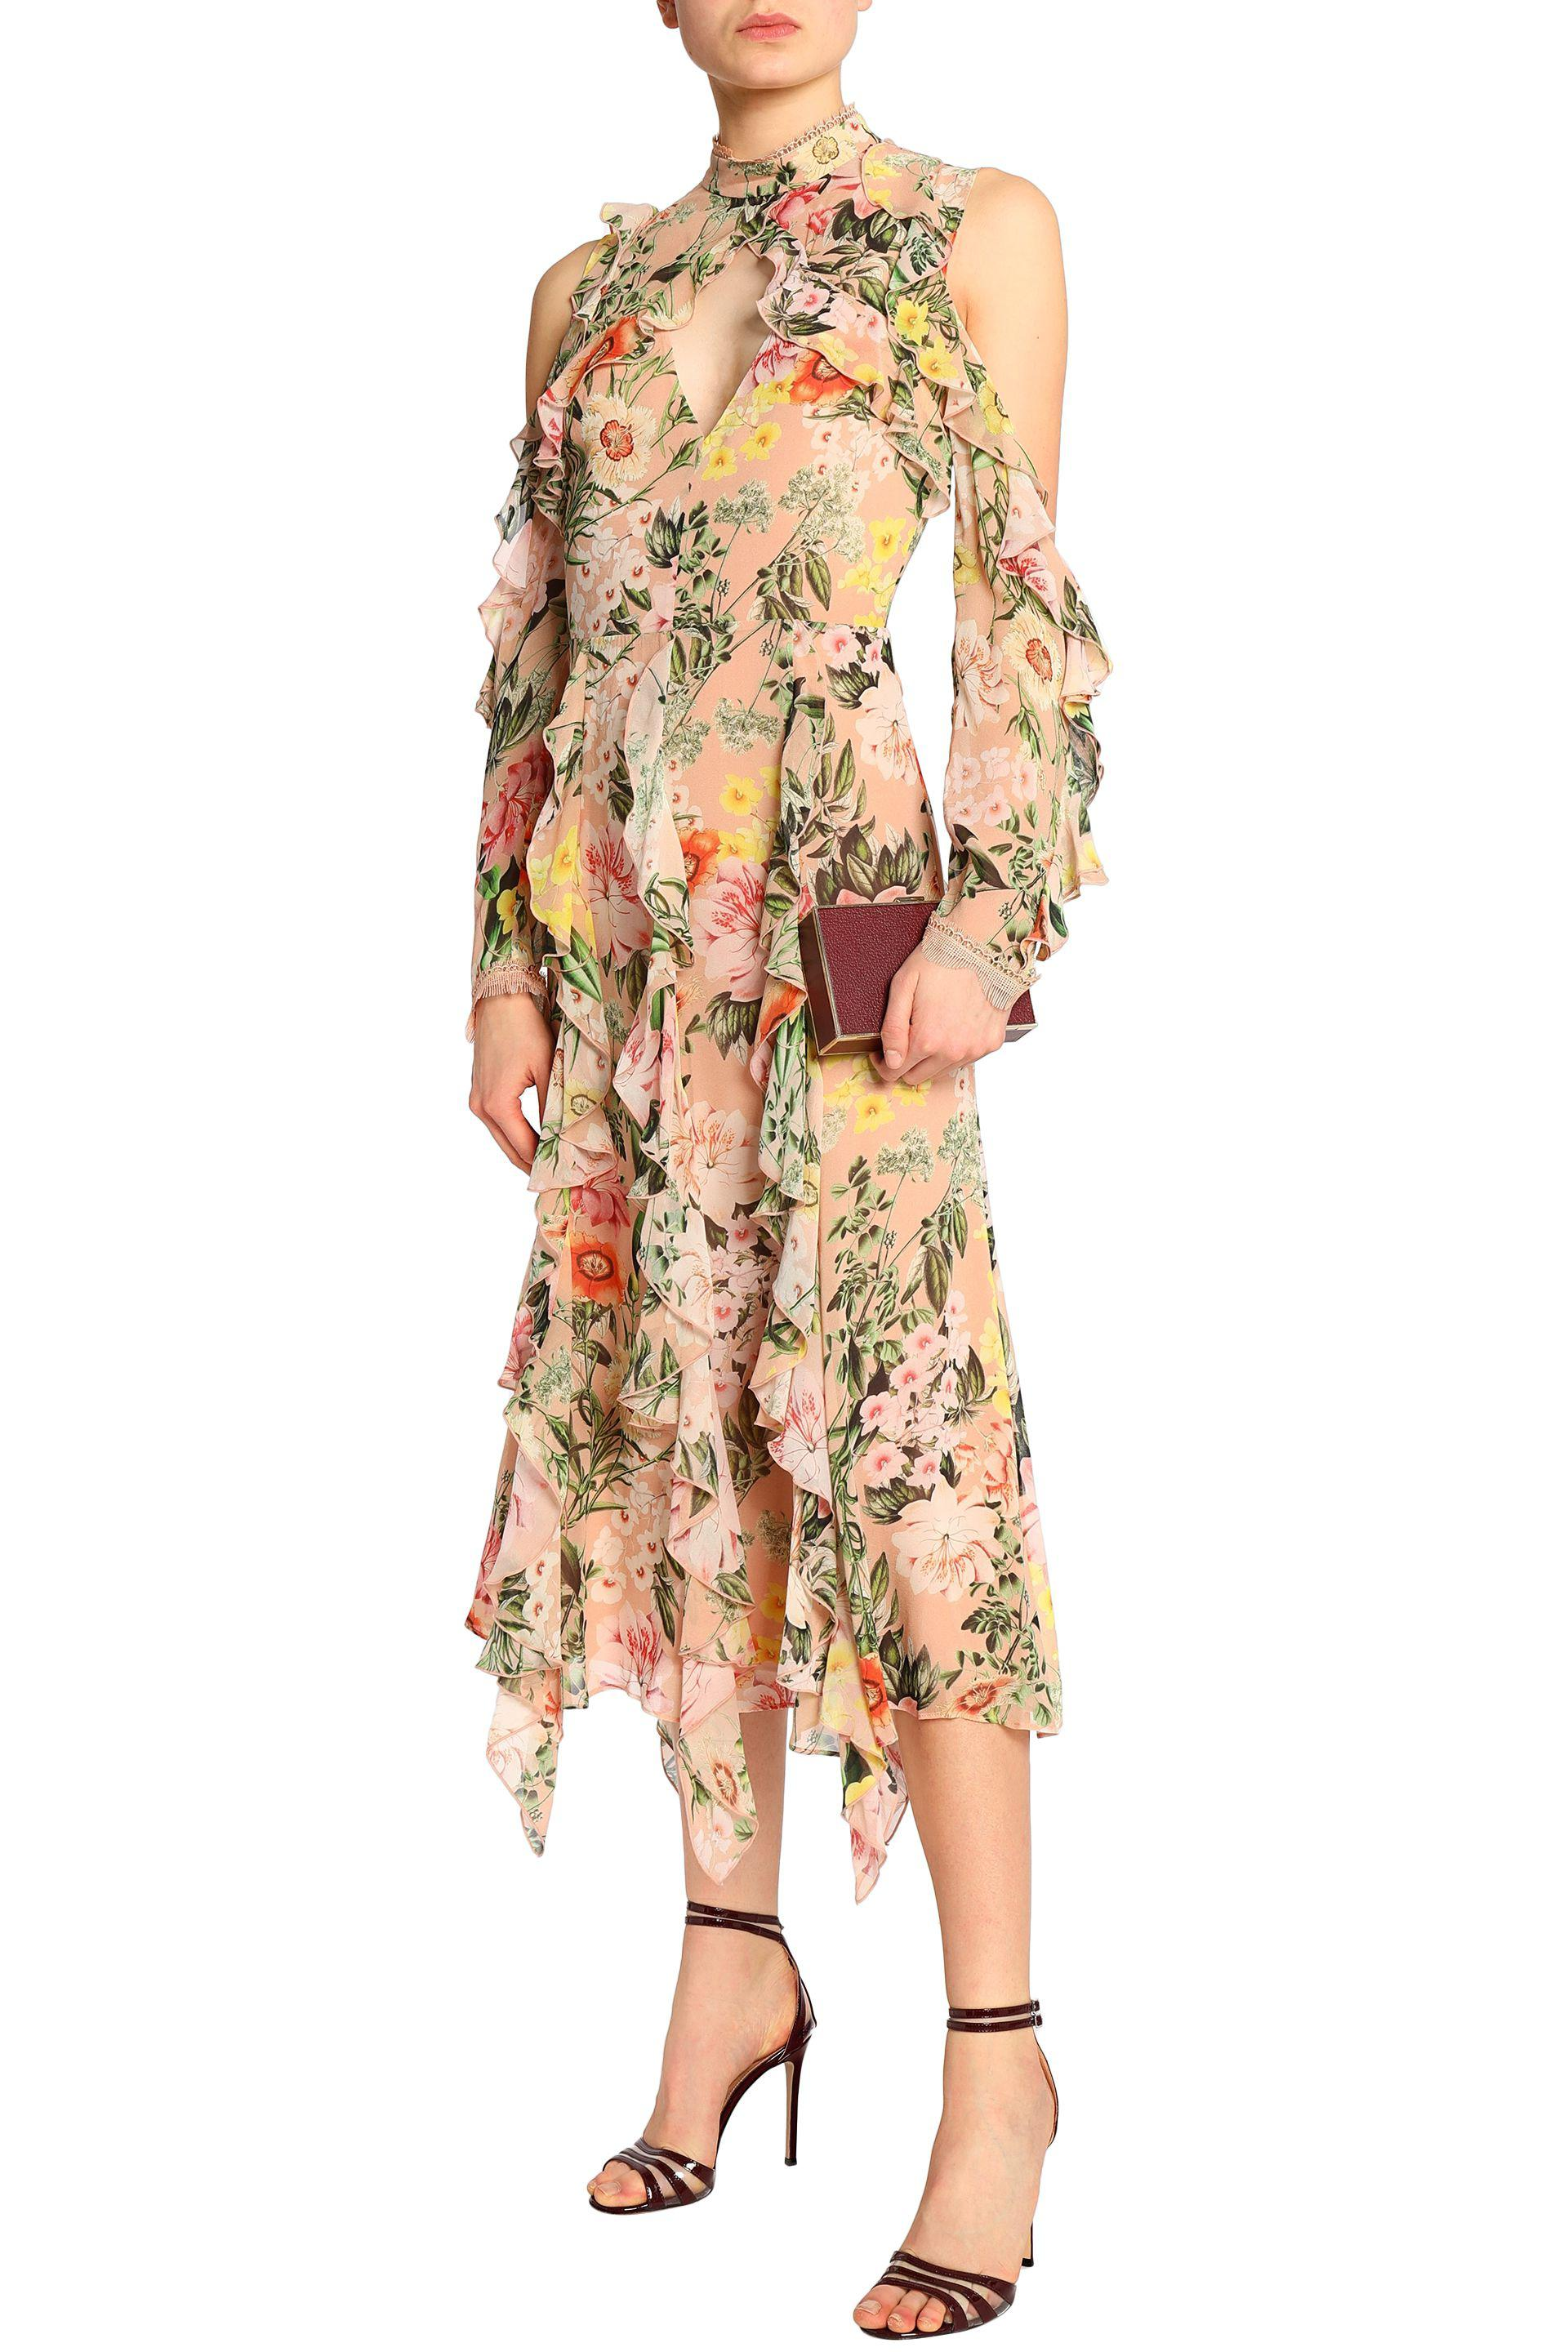 Nicholas Woman Cold-shoulder Ruffled Floral-print Silk Crepe De Chine Midi Dress Peach Size 2 Nicholas aAbXwXYtIt